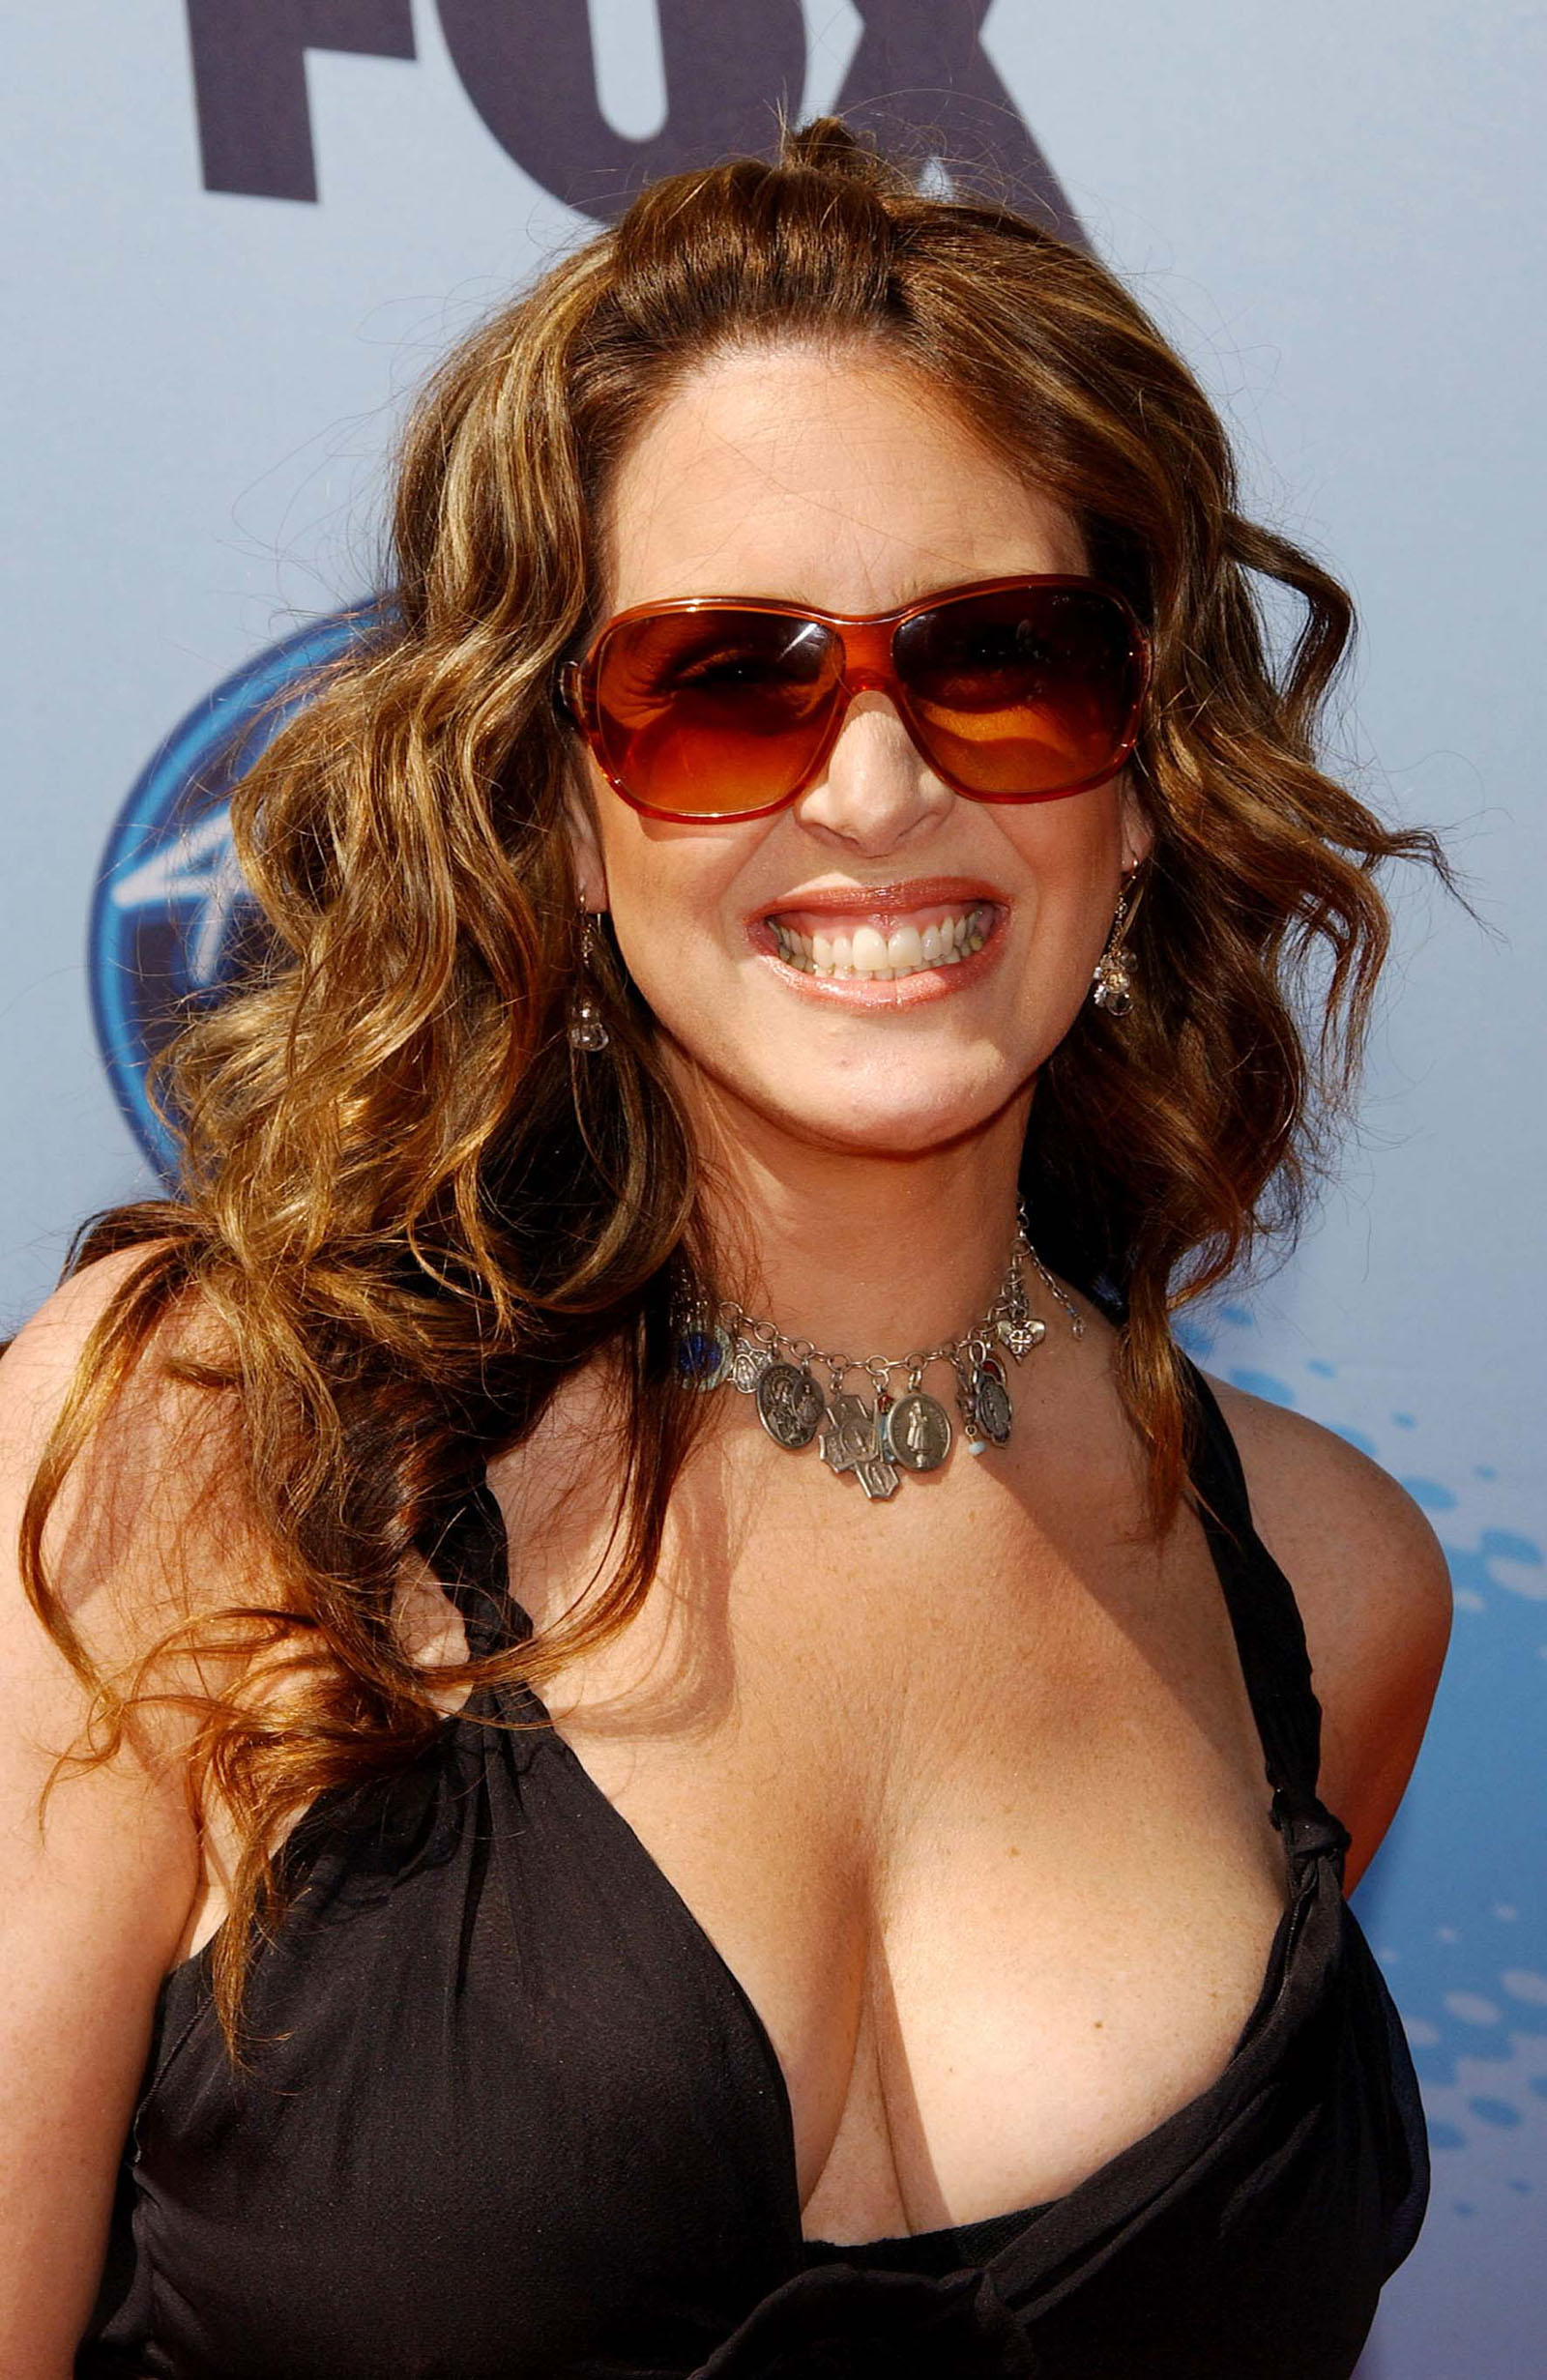 joely-fisher-sexy-no-show-bikini-nude-pictures